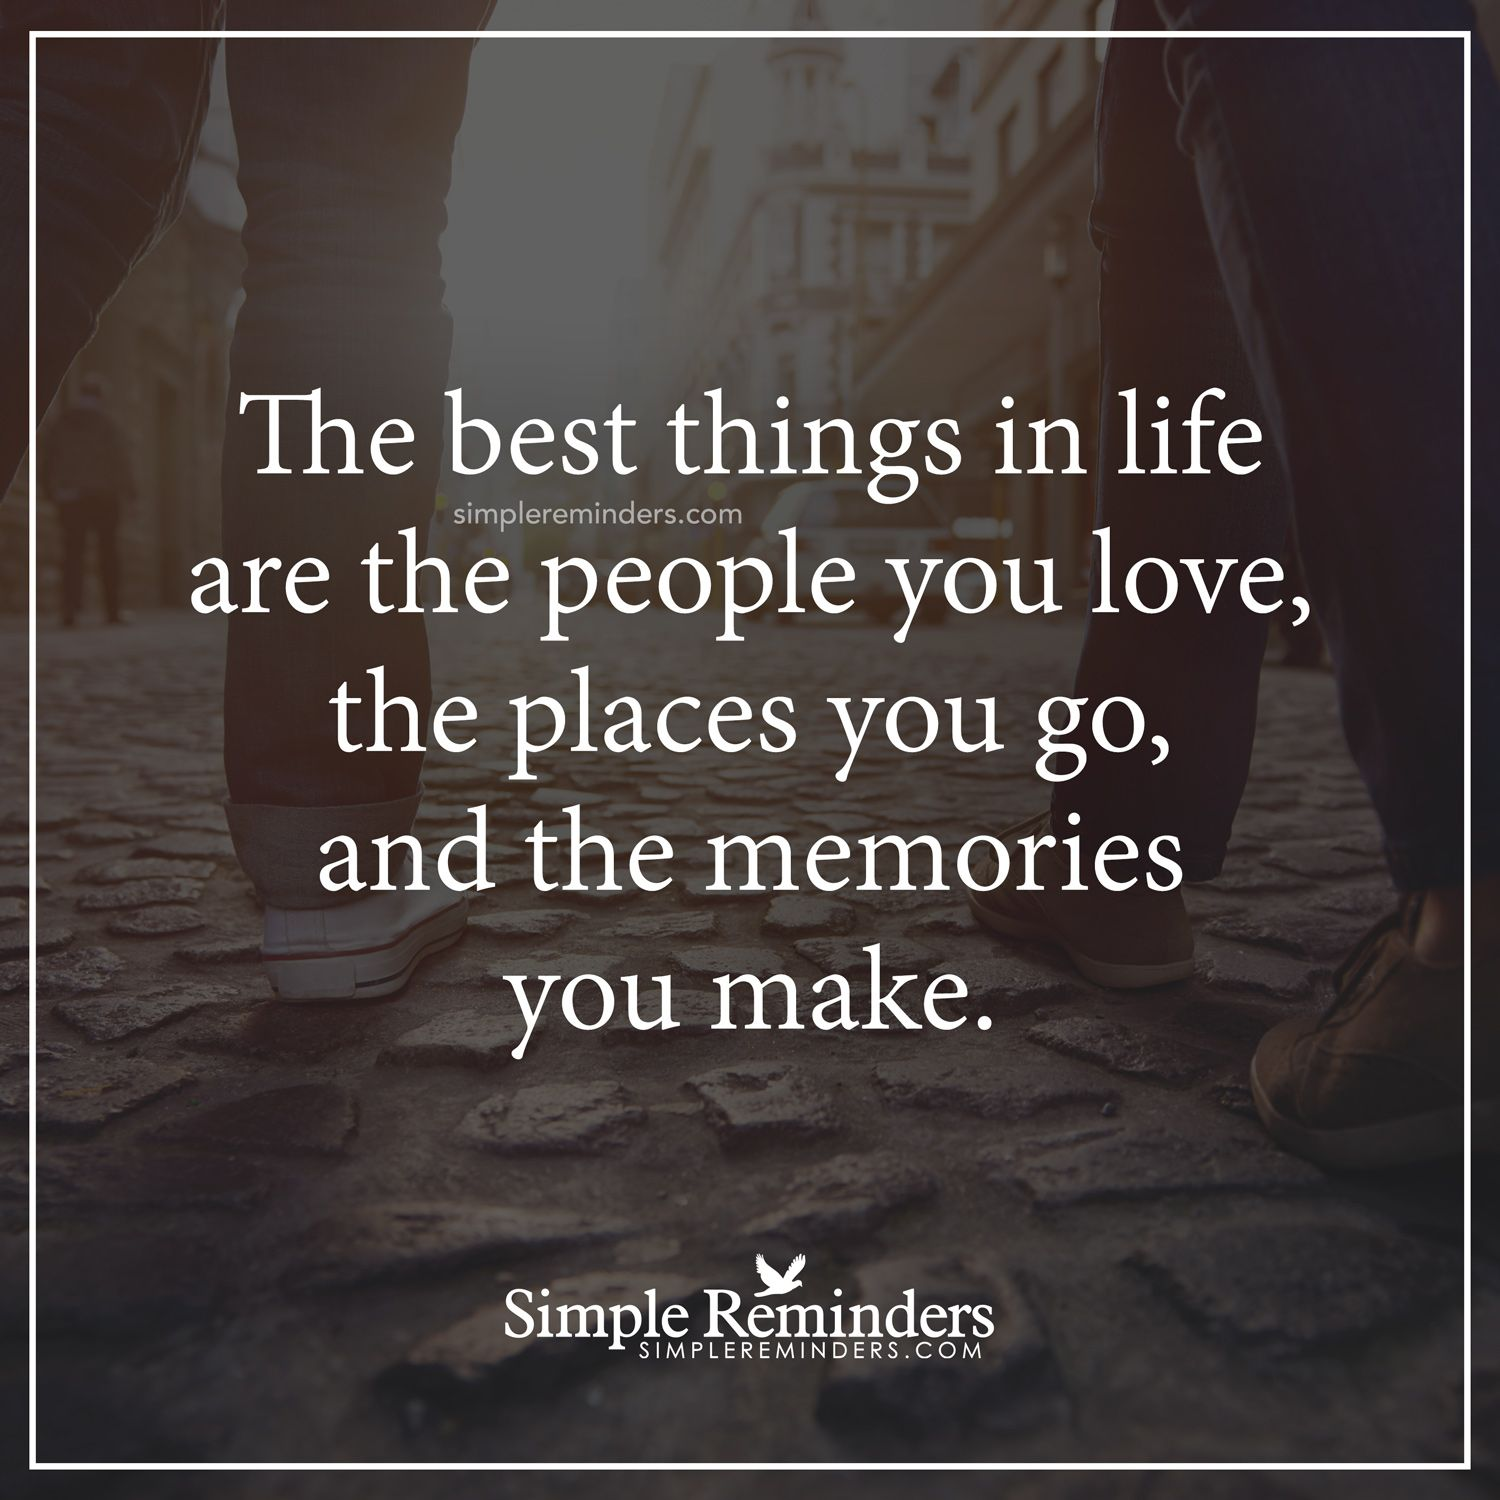 Best Memories Quotes The best things in life The best things in life are the people you  Best Memories Quotes